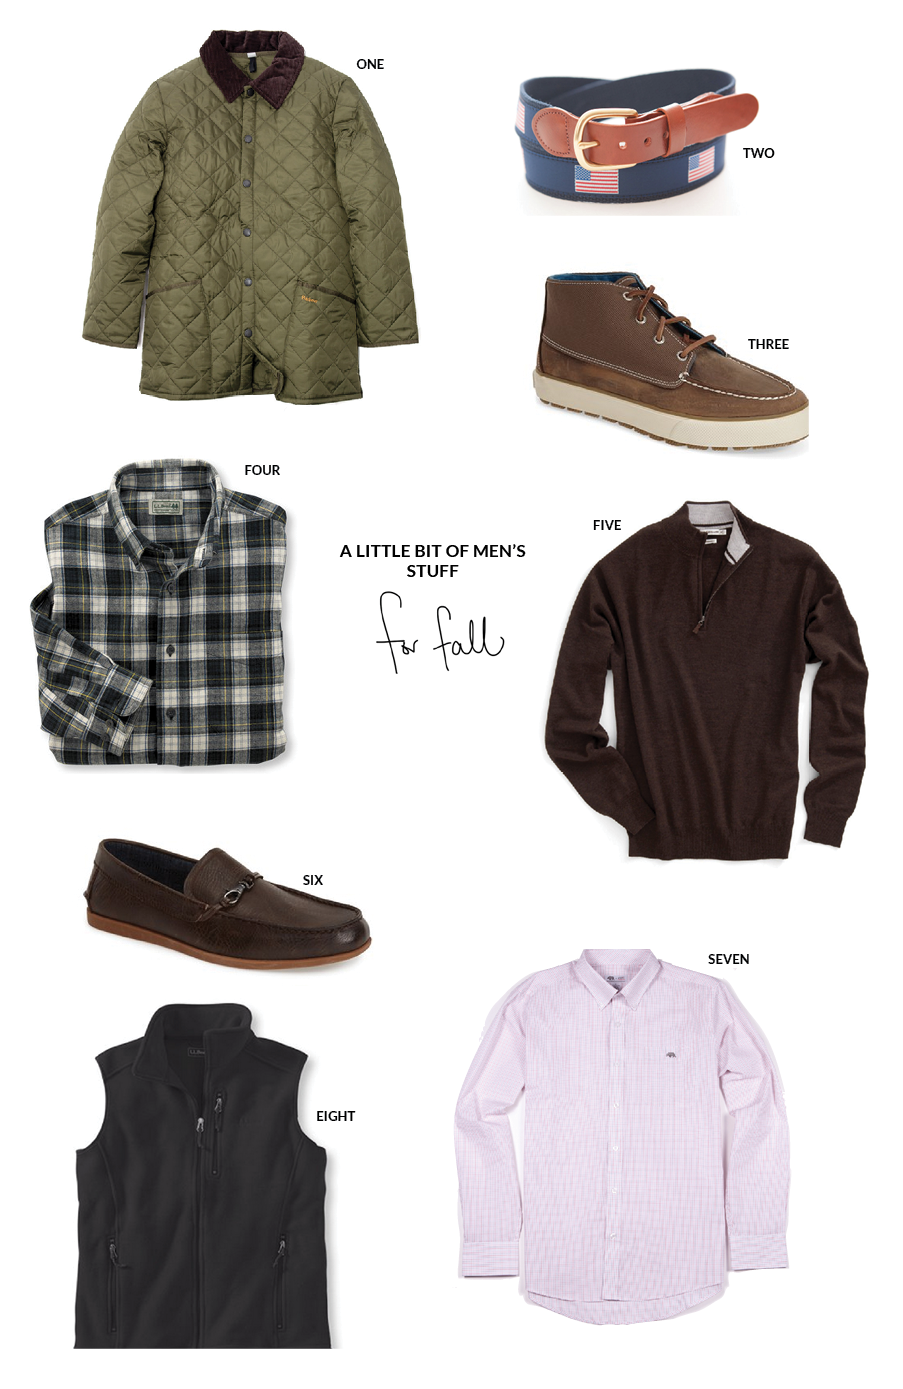 Men's Transitional Items for Fall